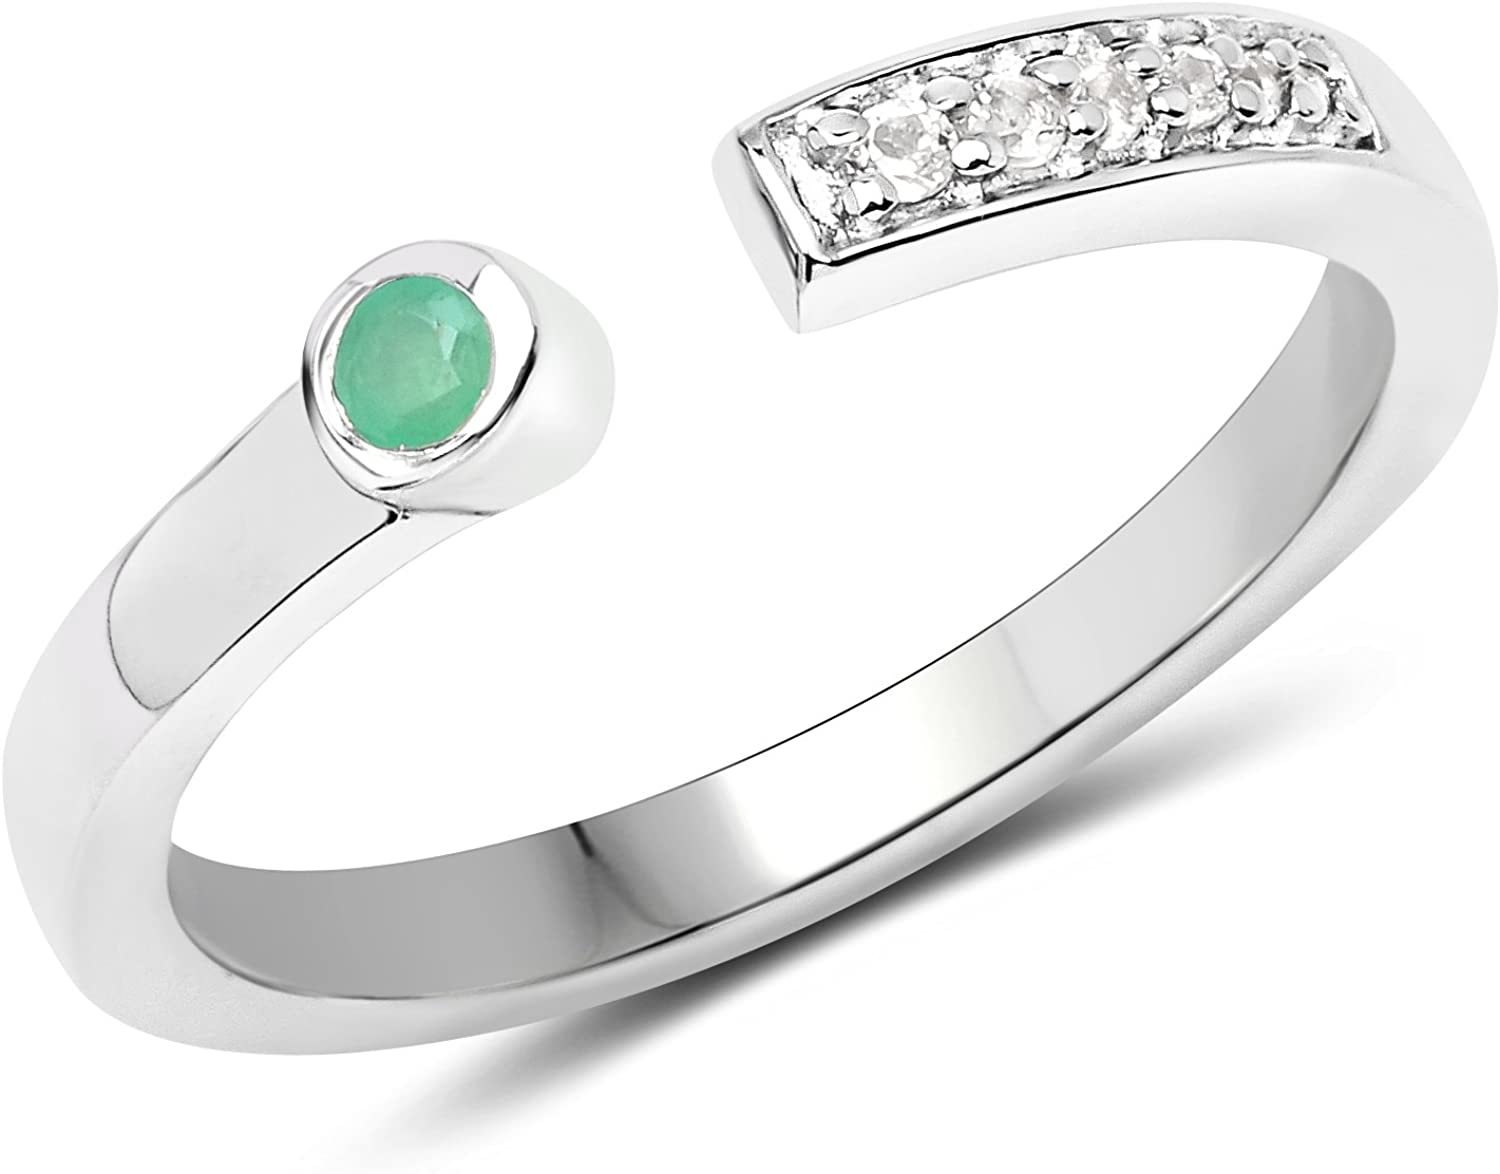 LoveHuang service 0.07 Carats Genuine Emerald Topaz 2021 spring and summer new White and Stacking R